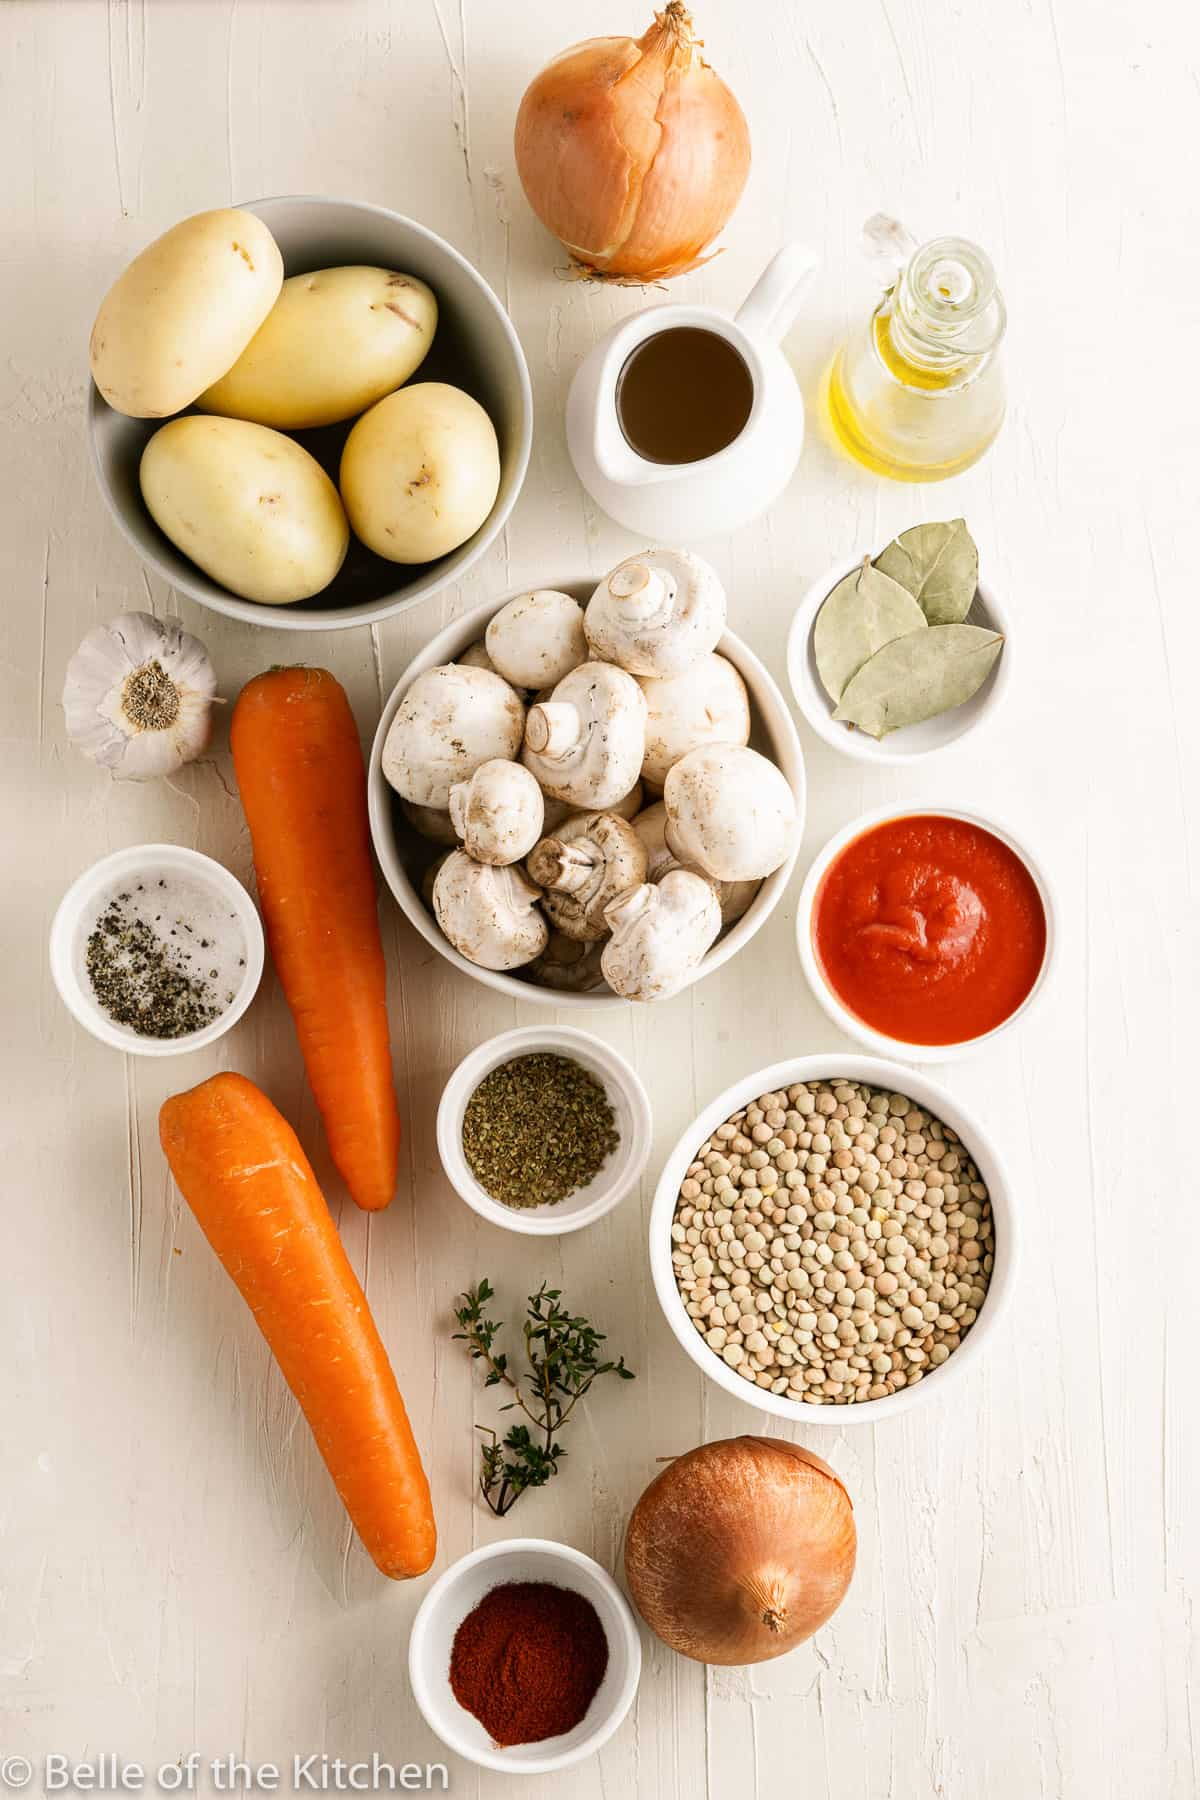 ingredients laid out to make soup